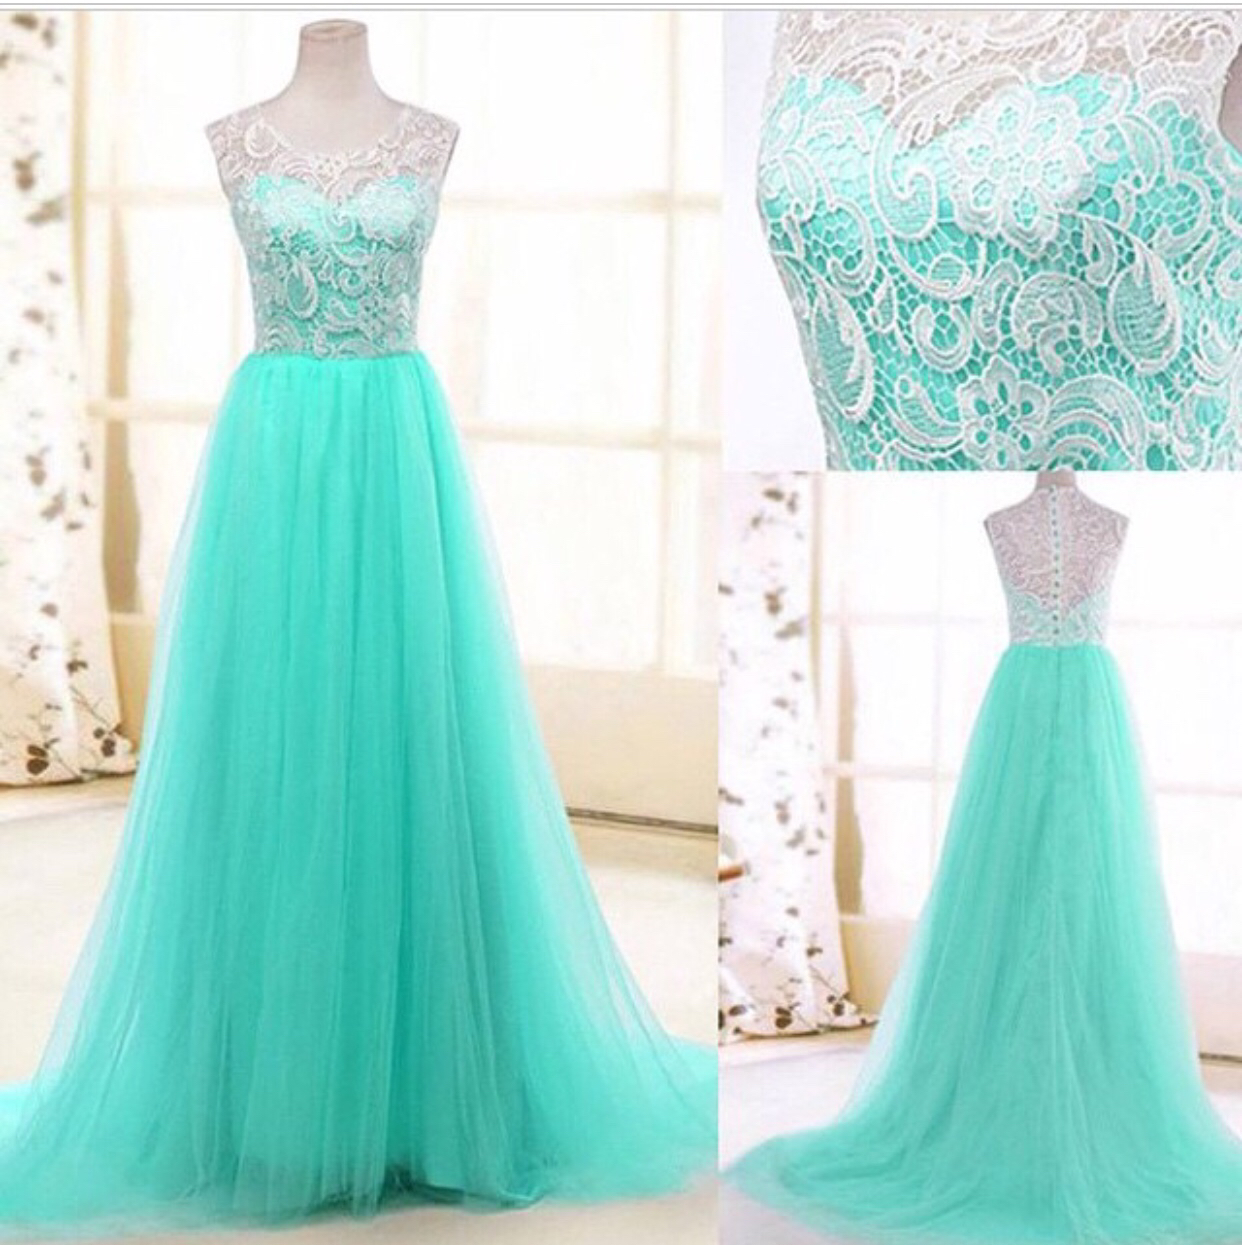 Lace Formal Dress Bridesmaid Dress Women Evening Party Dress Sexy ...